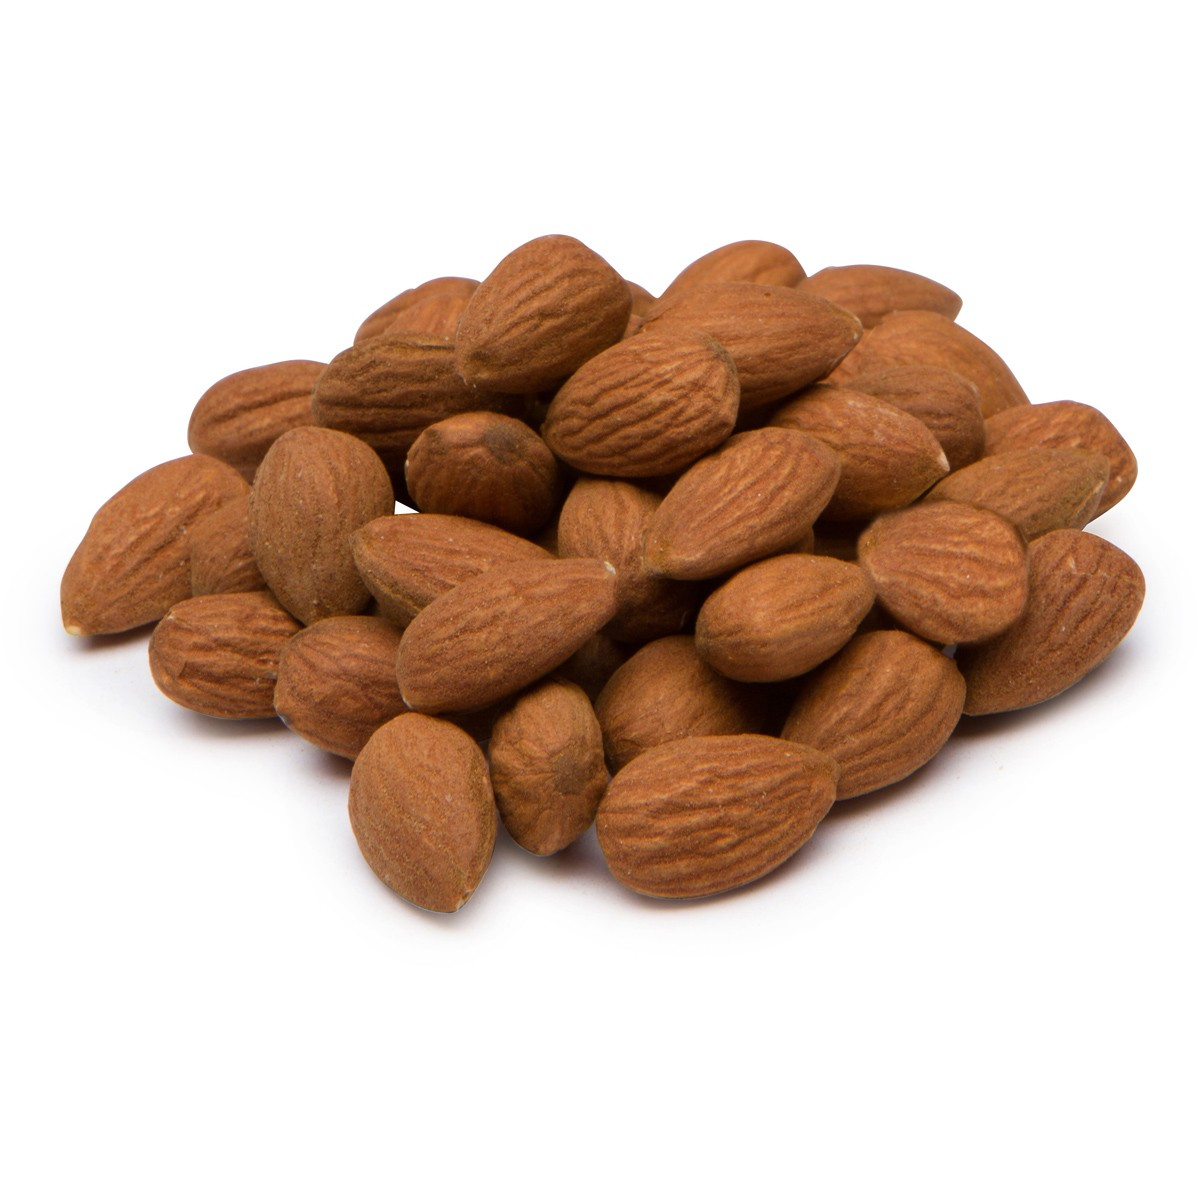 Marvelous Treehouse Almonds Part - 11: ... Dry Roasted Natural Whole Almonds ...